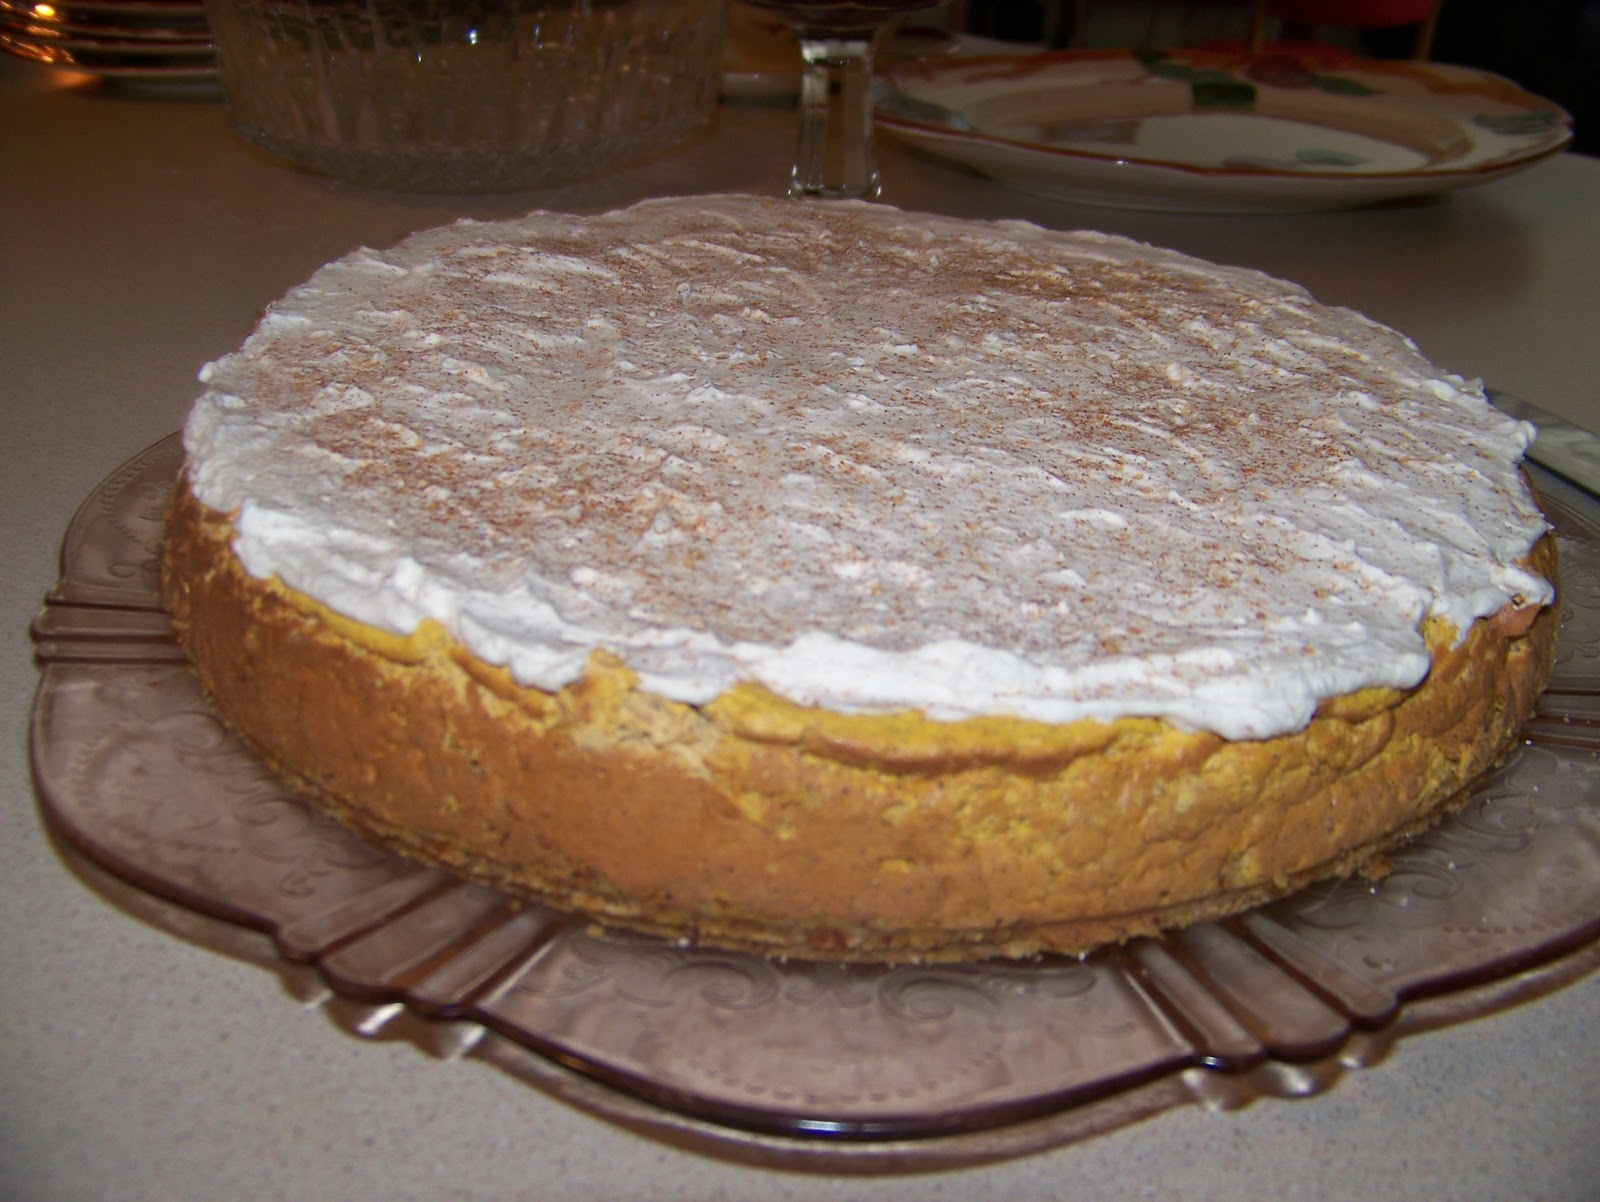 Ginny's Low Carb Kitchen: Pumpkin Cheese Cake Revisited